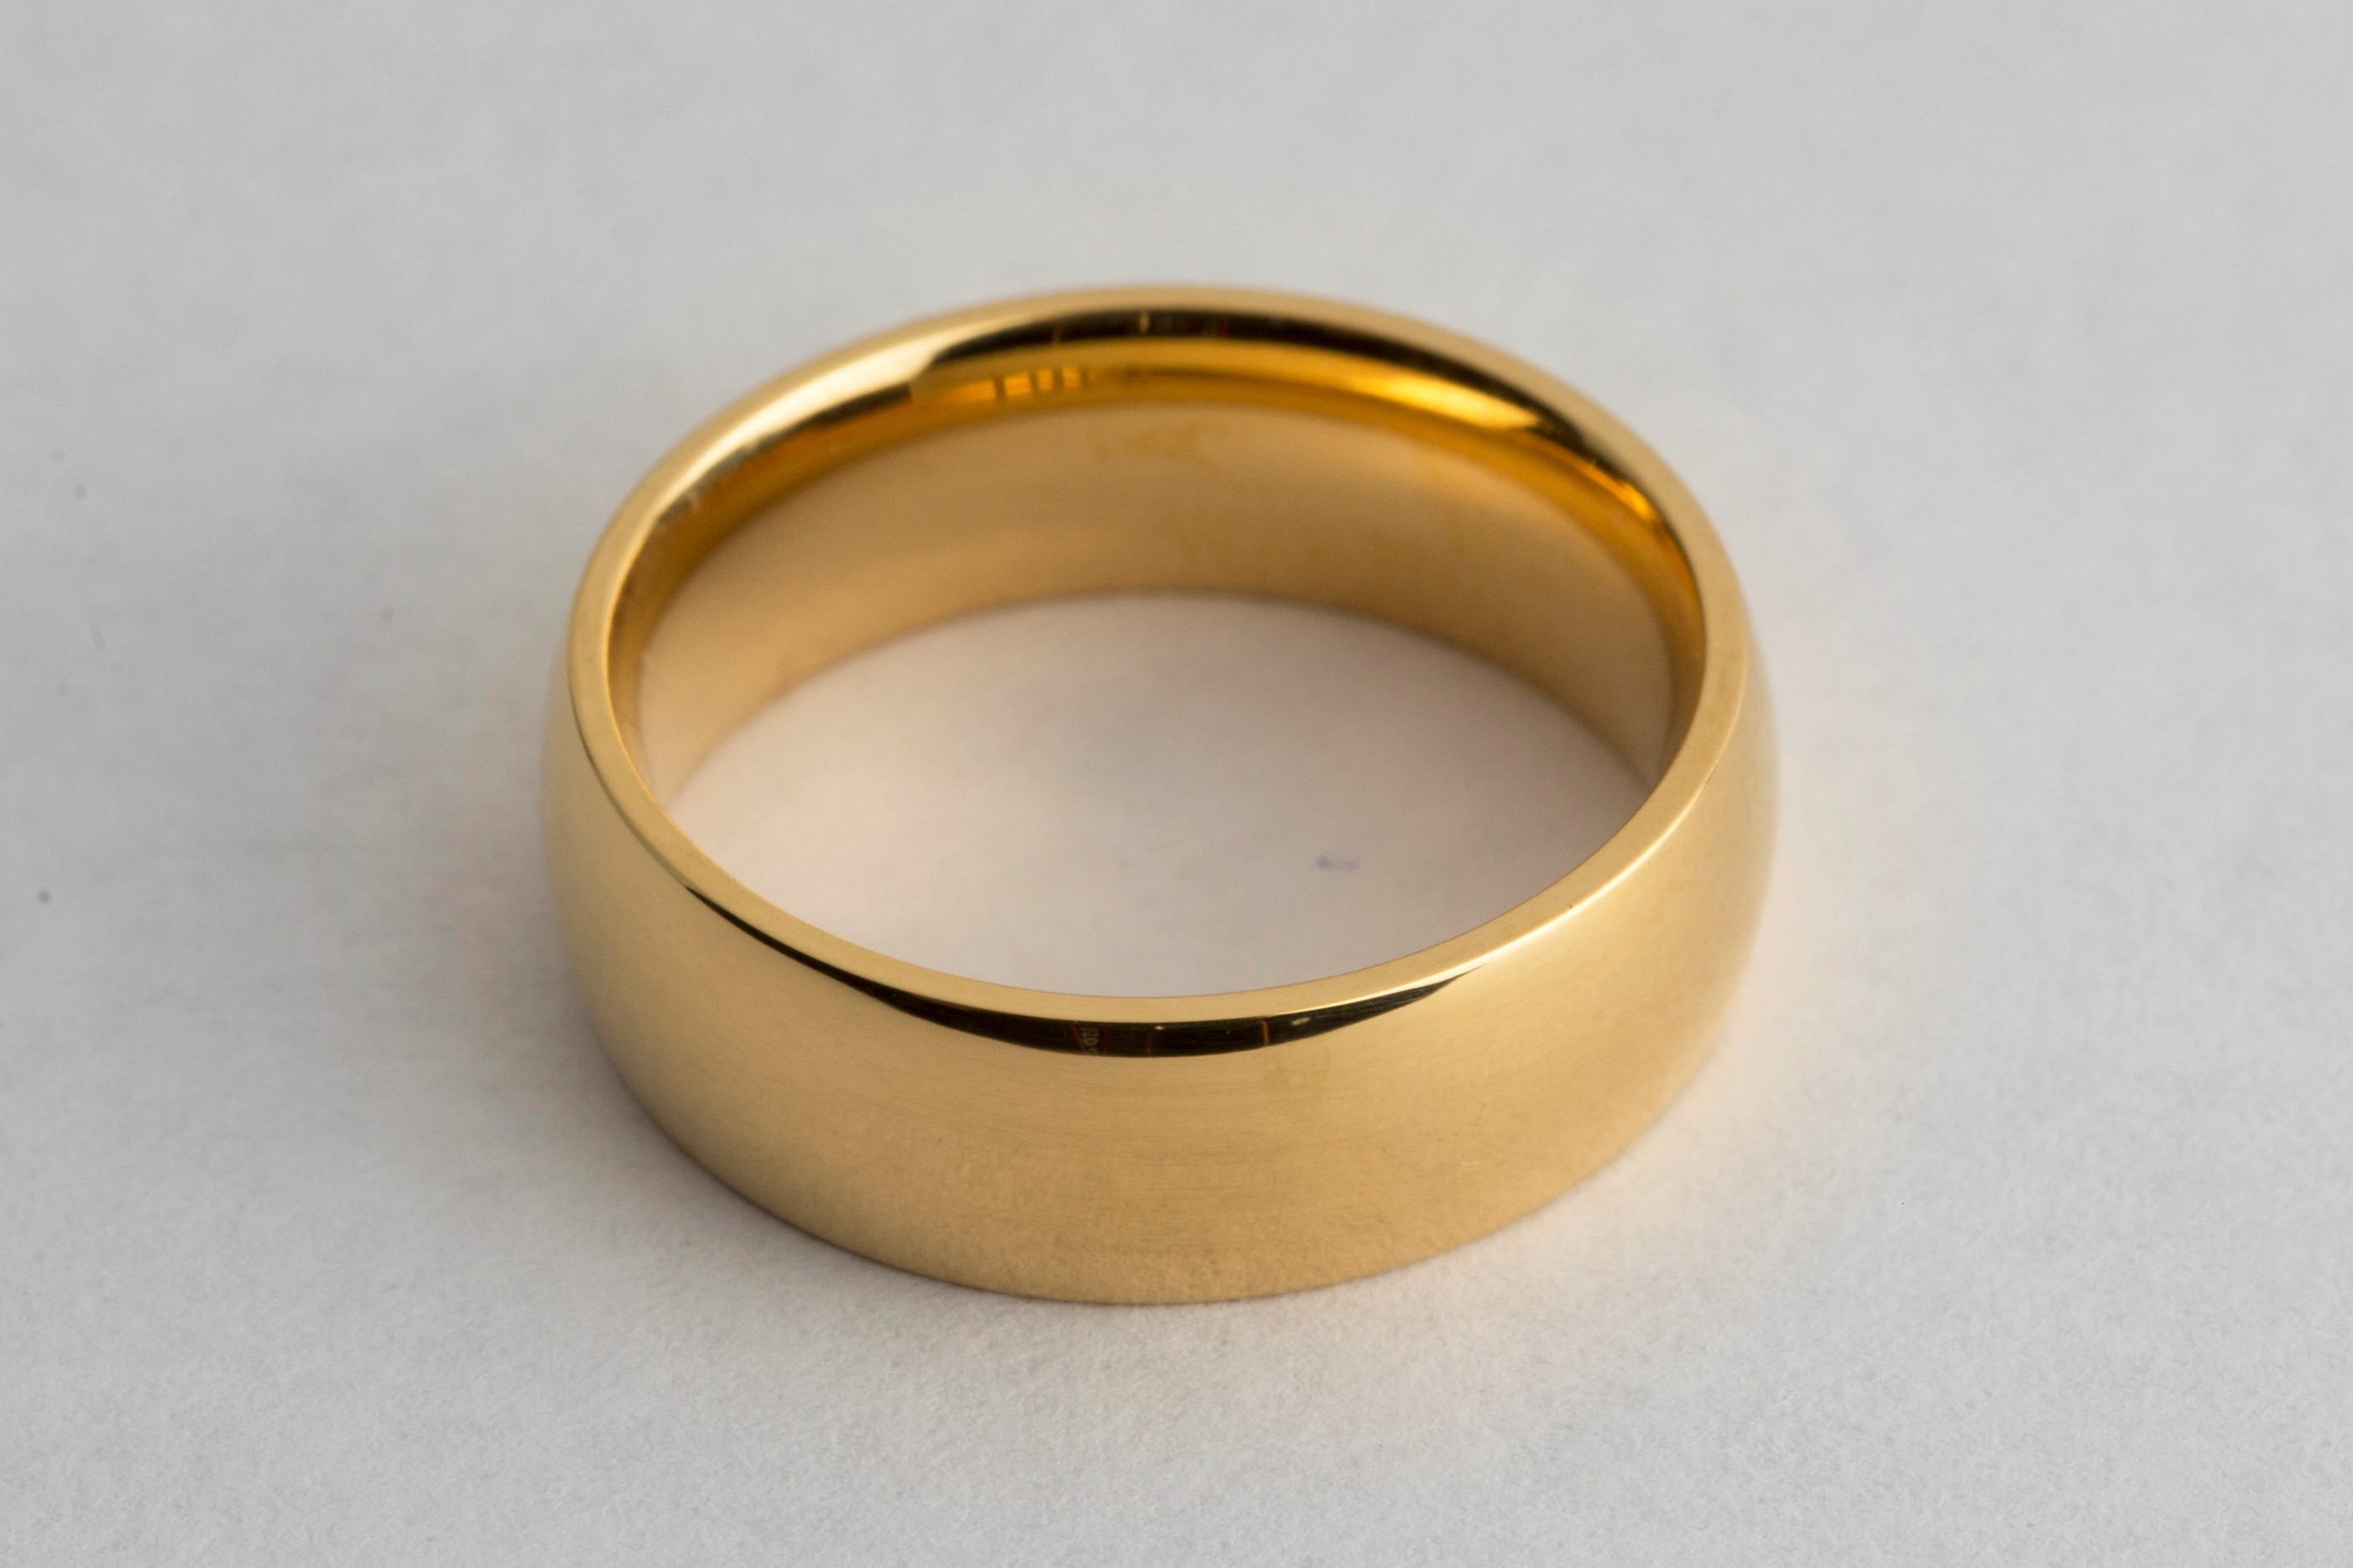 Gold wedding ring electroplated in 24k gold solution